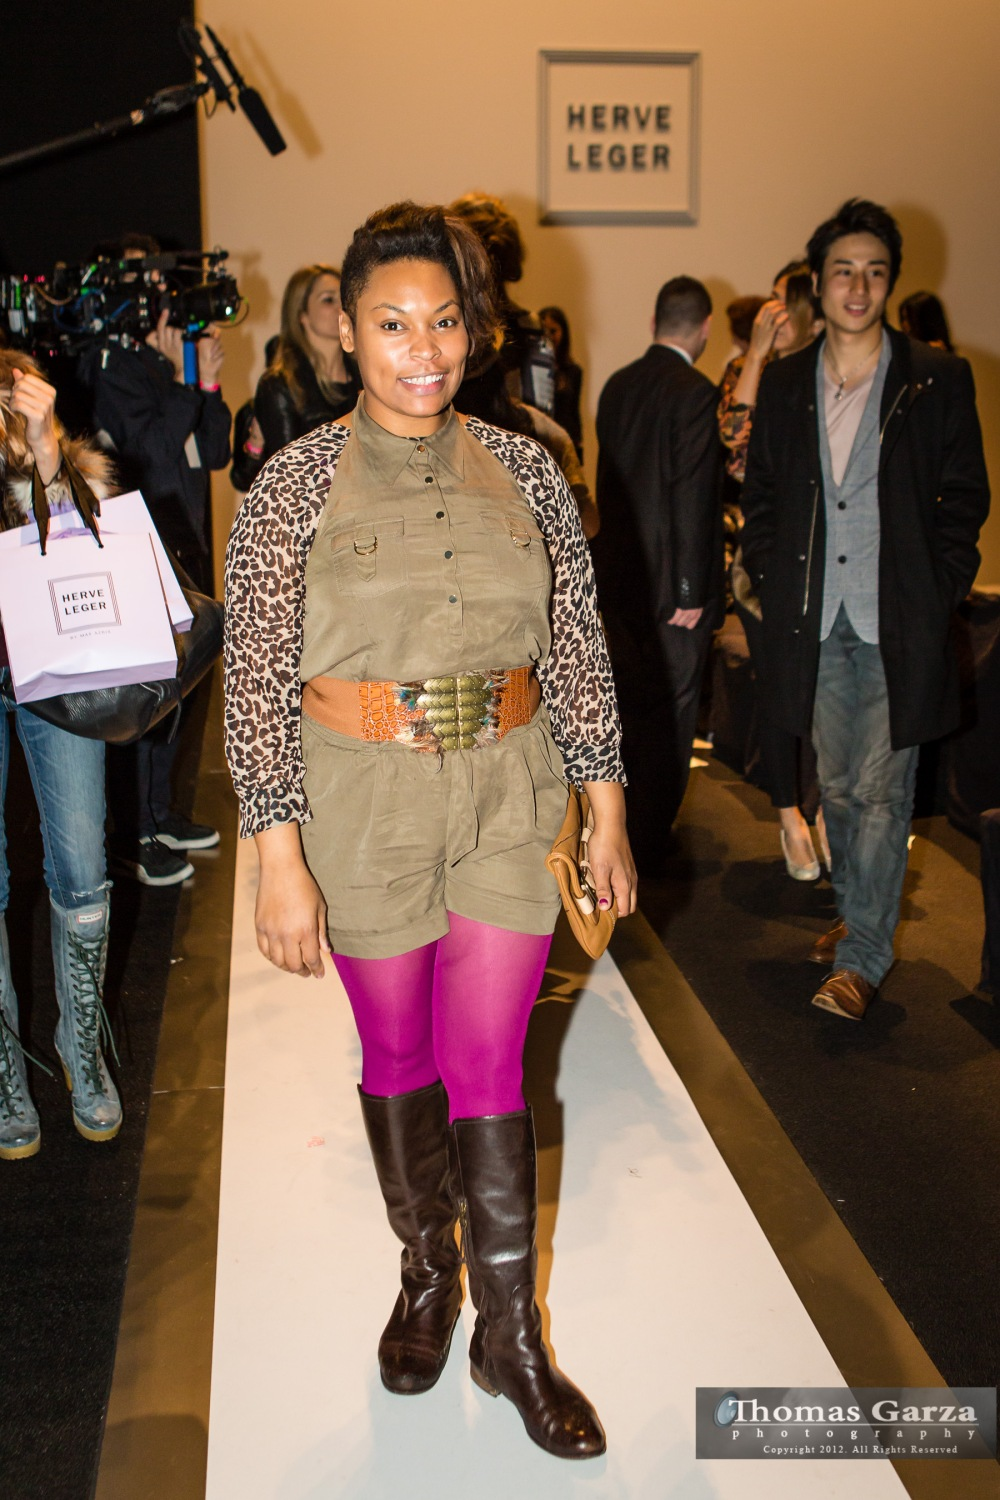 Brandy Voirin, Bites of Style Founder at the Herve Leger NYFW 2013 Show